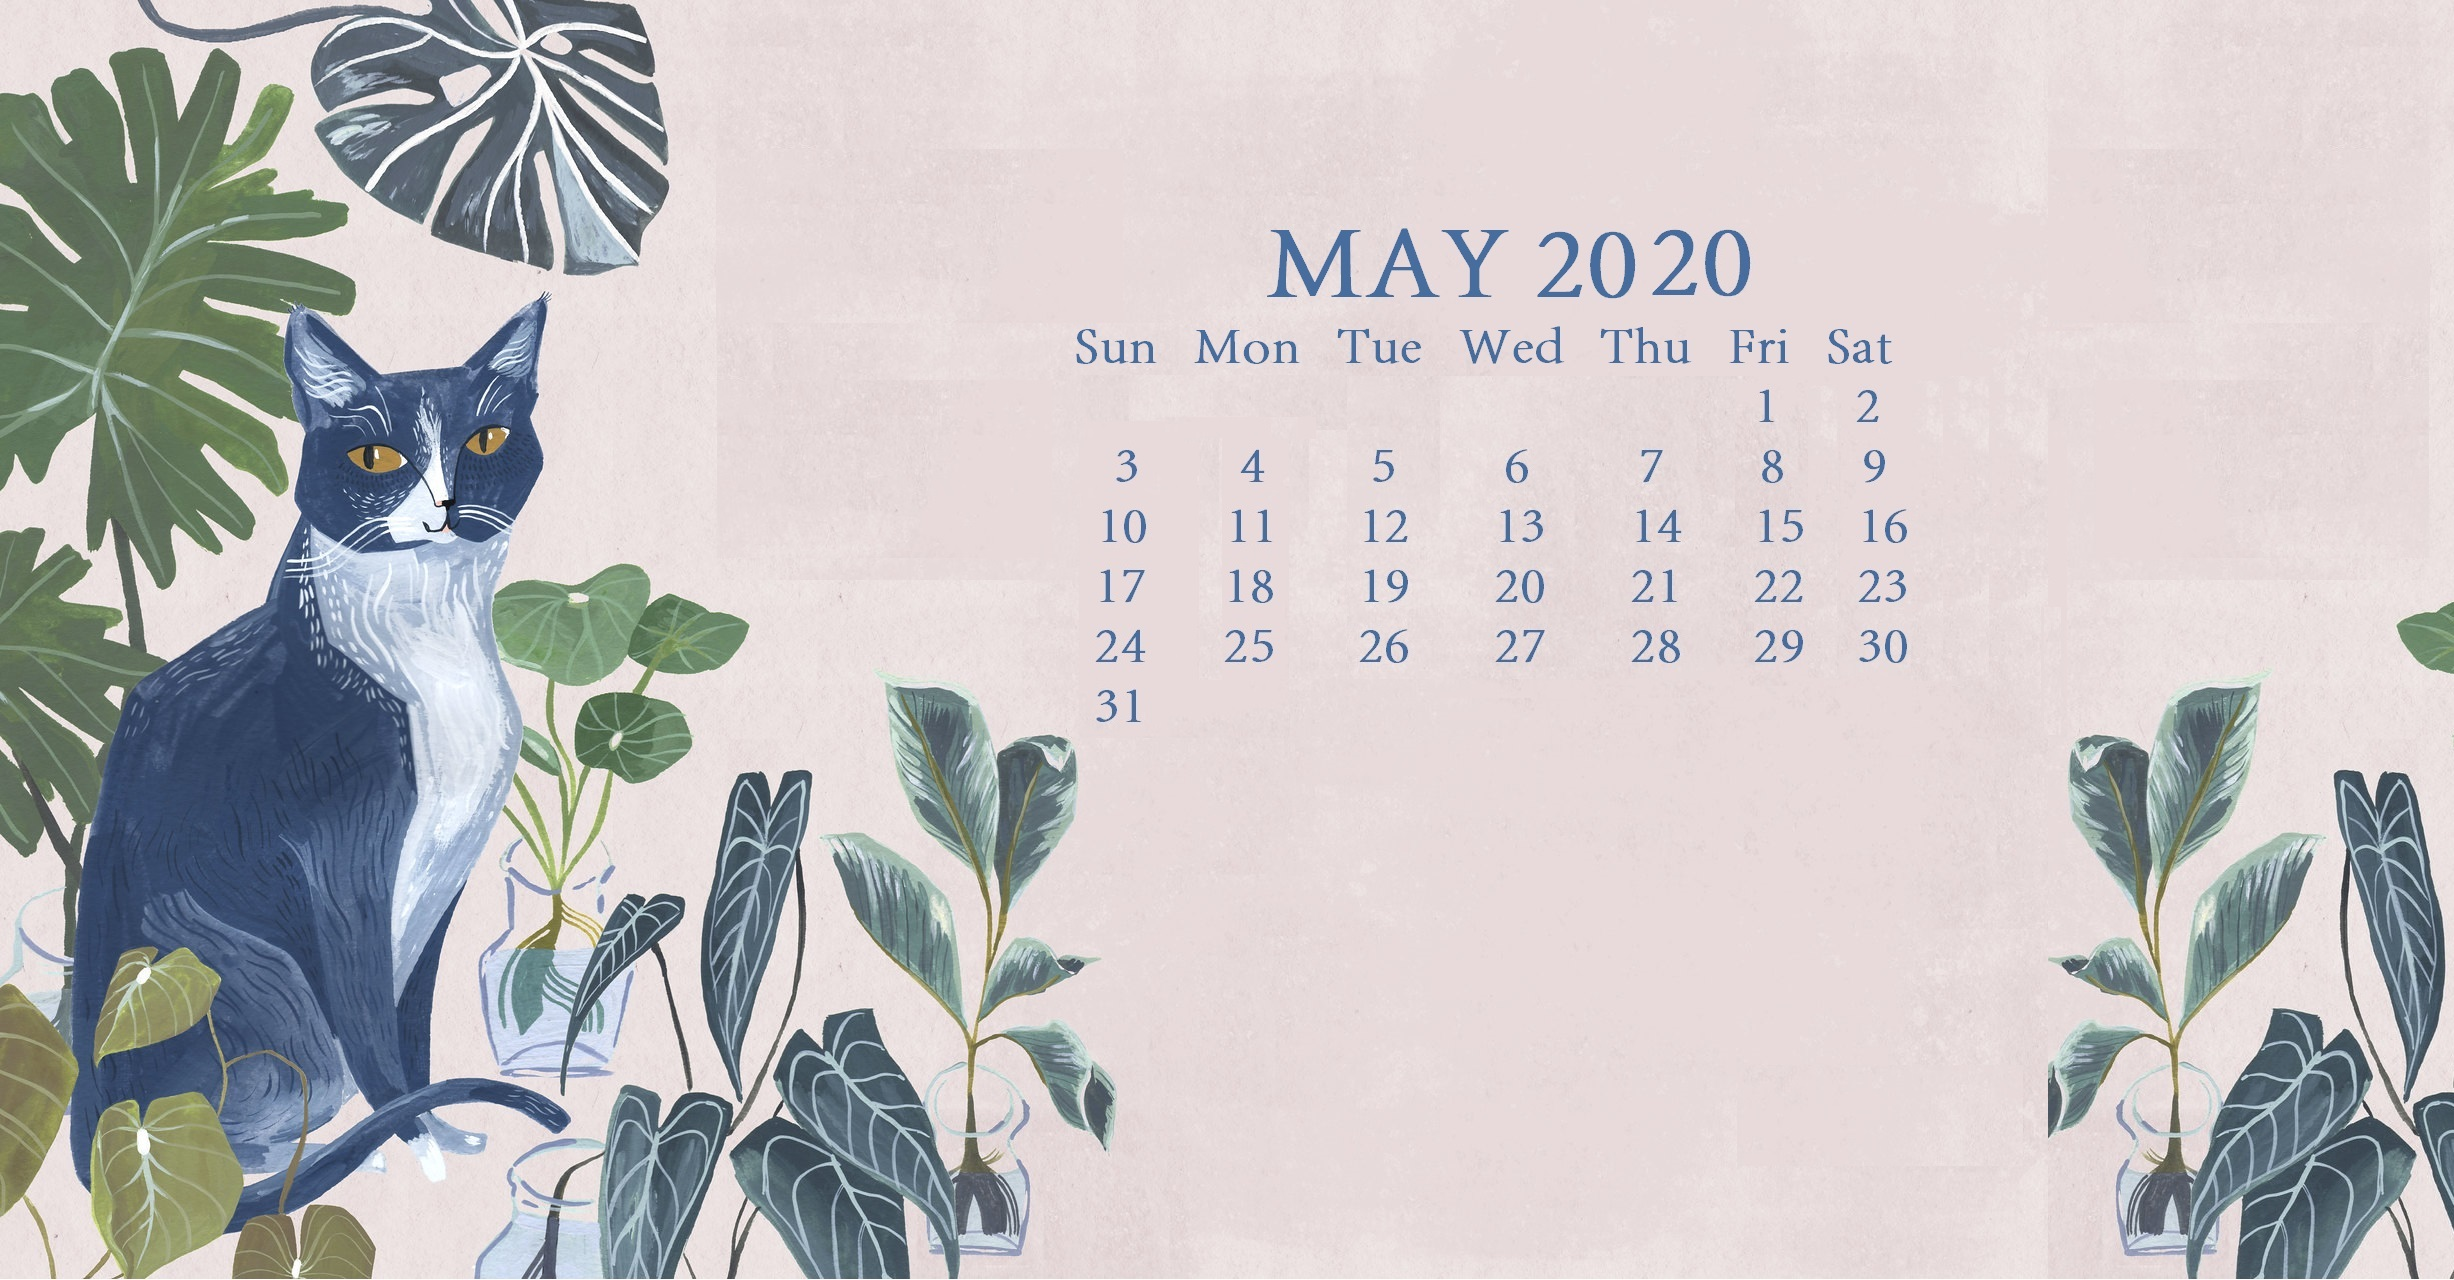 13] May 2020 Calendar Wallpapers on WallpaperSafari 2454x1280